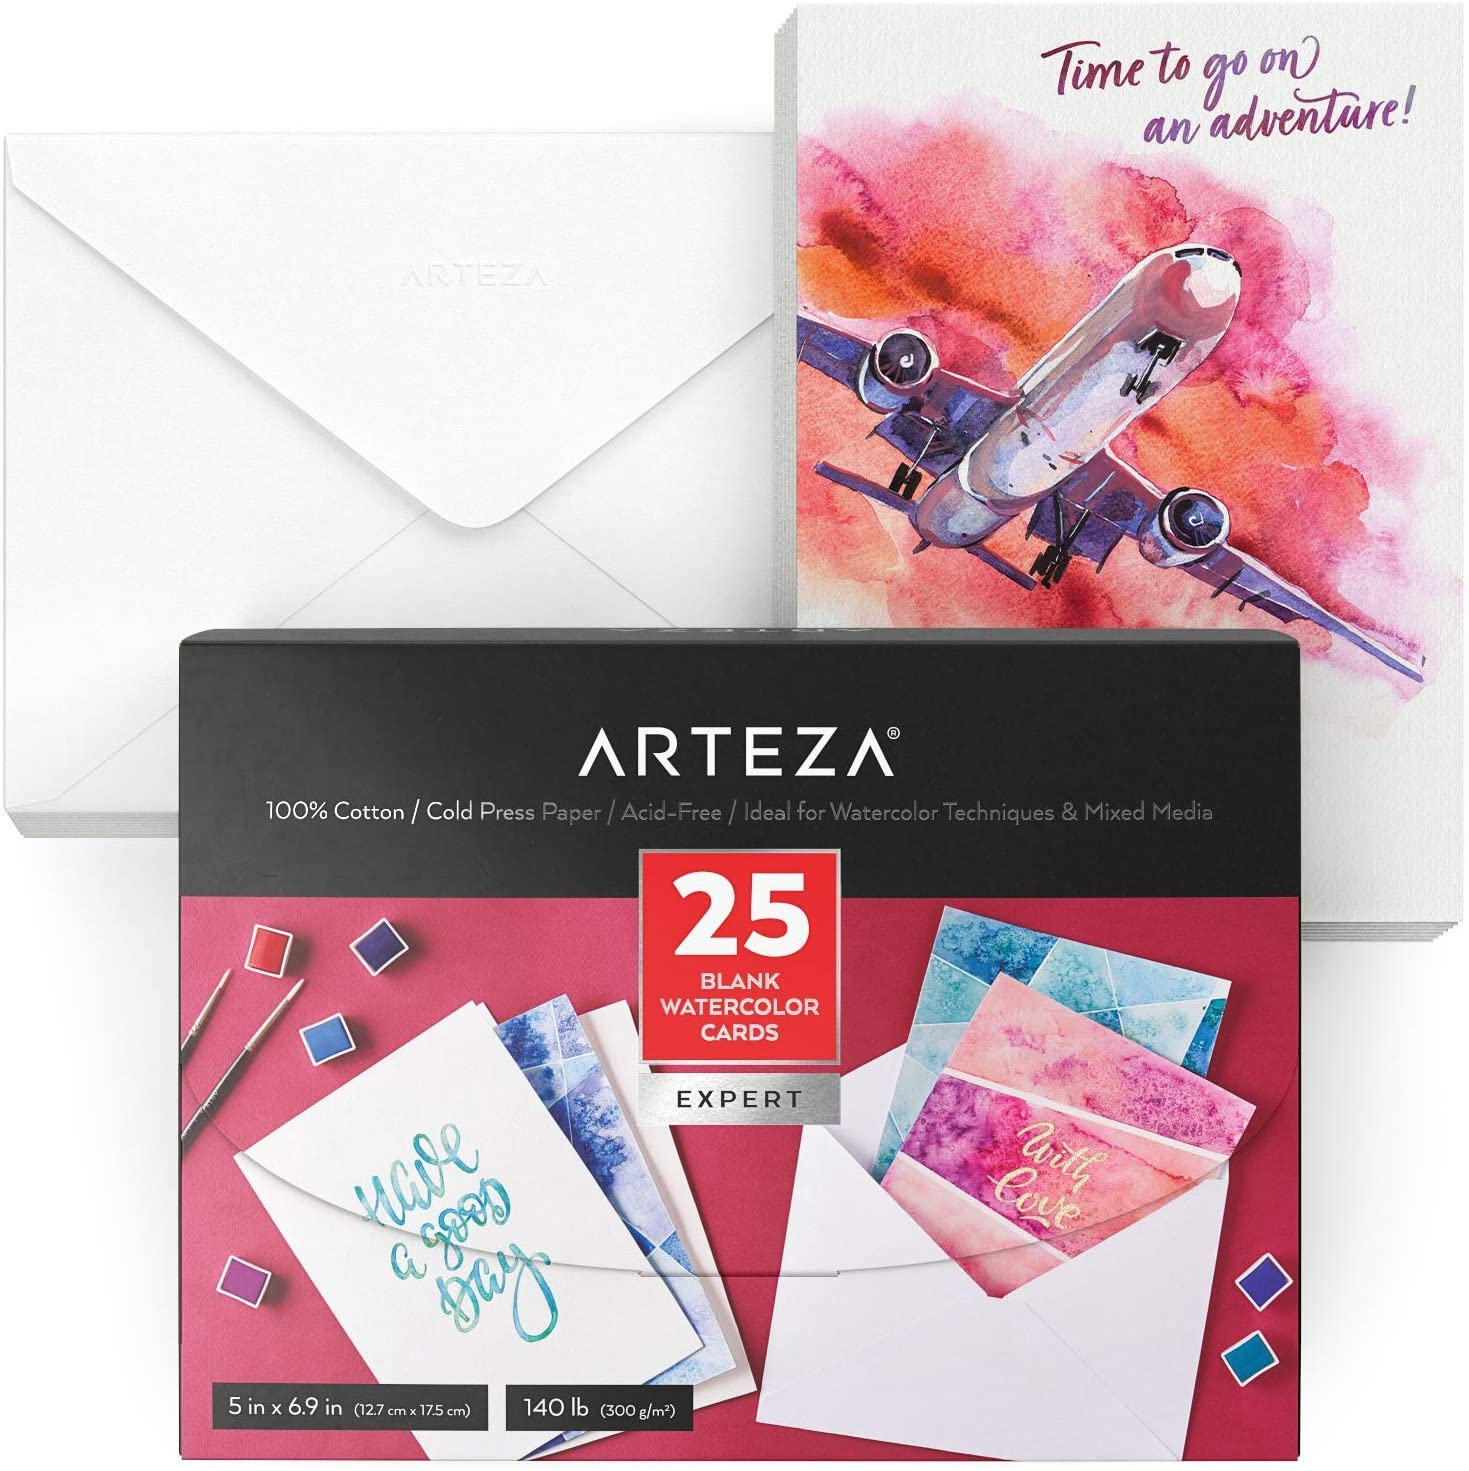 Arteza Blank Watercolor Cards with Envelopes, 5x6.875 Inches, Set of 25, Heavyweight, 140 lb, 100% Cotton Watercolor Postcards for Thank You Notes, Invitations & Greeting Cards : Office Products